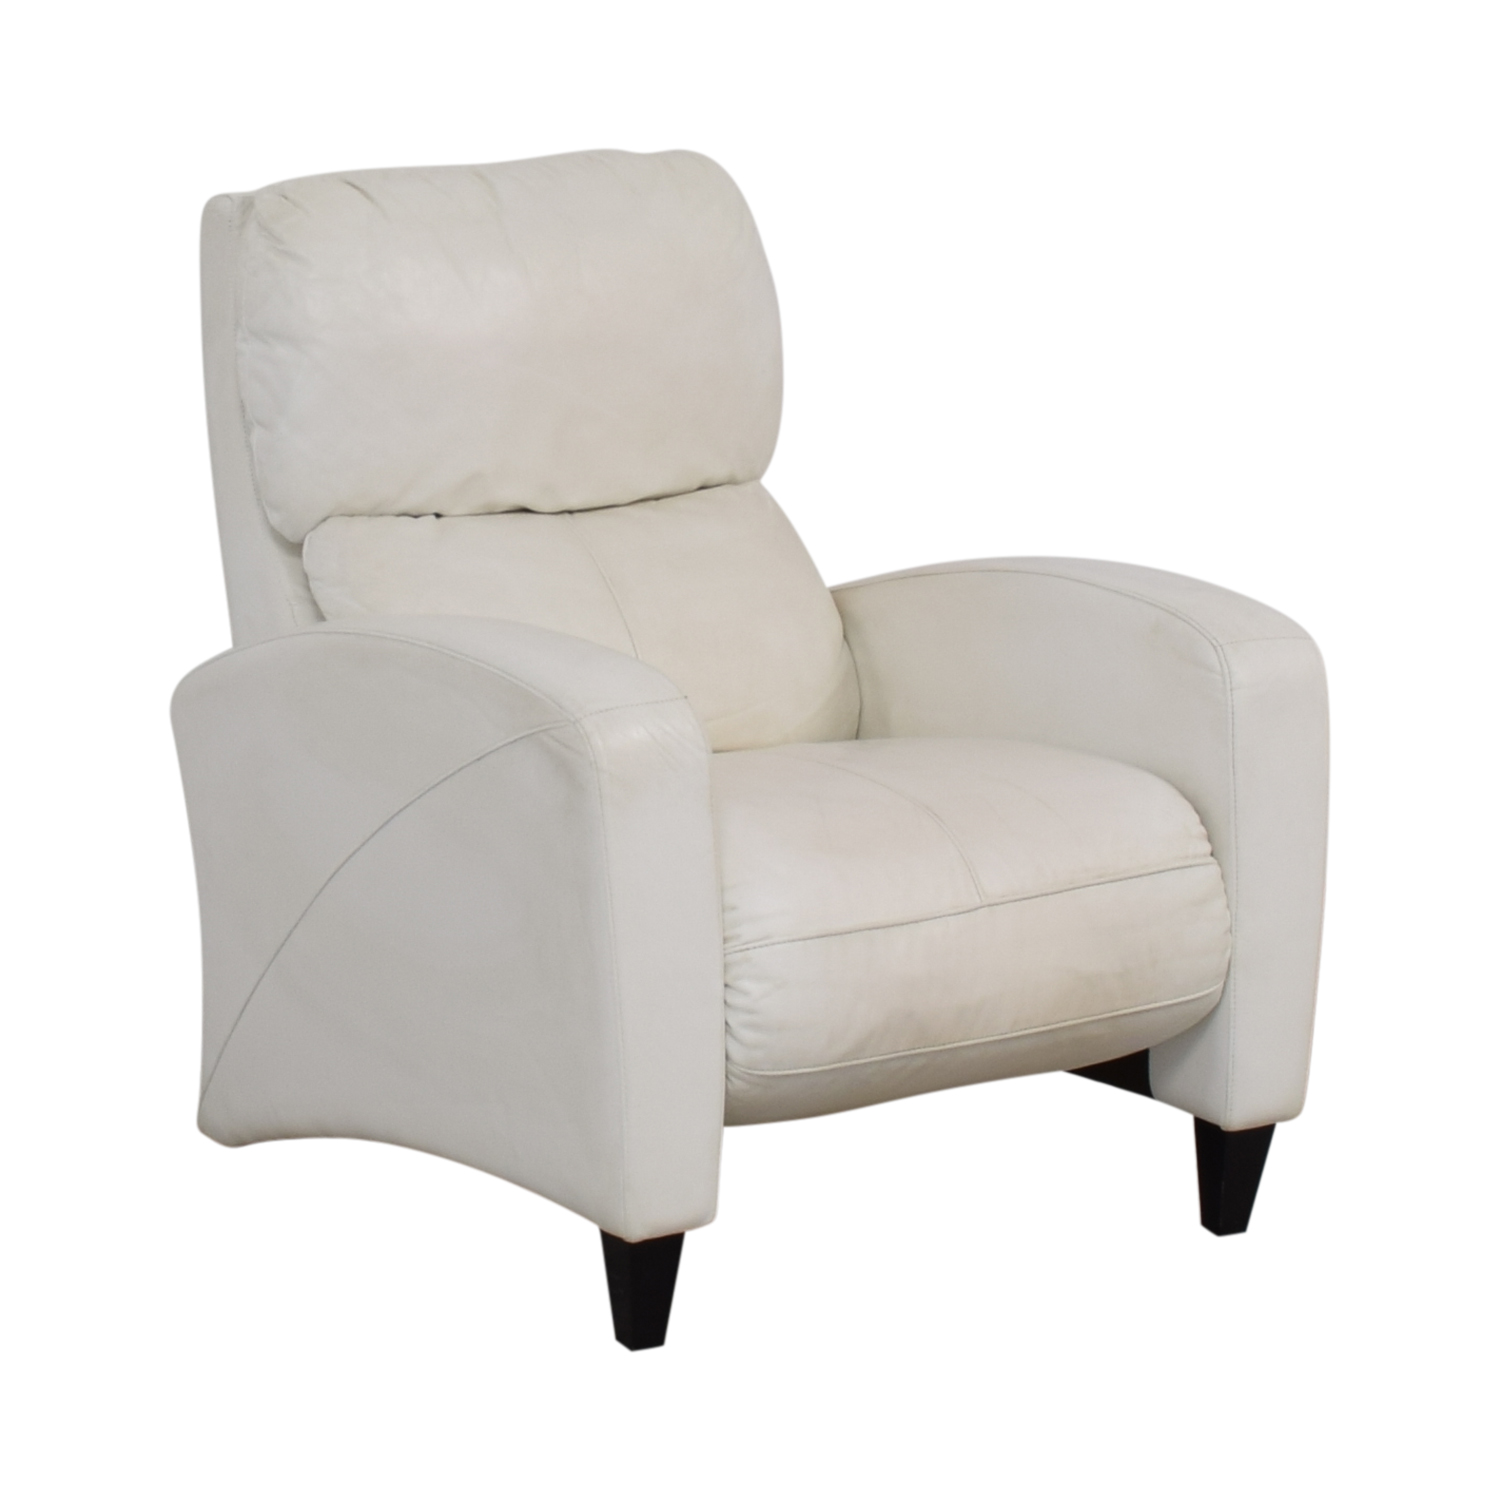 american leather chairs and recliners milo baughman lounge chair 45 off white recliner used